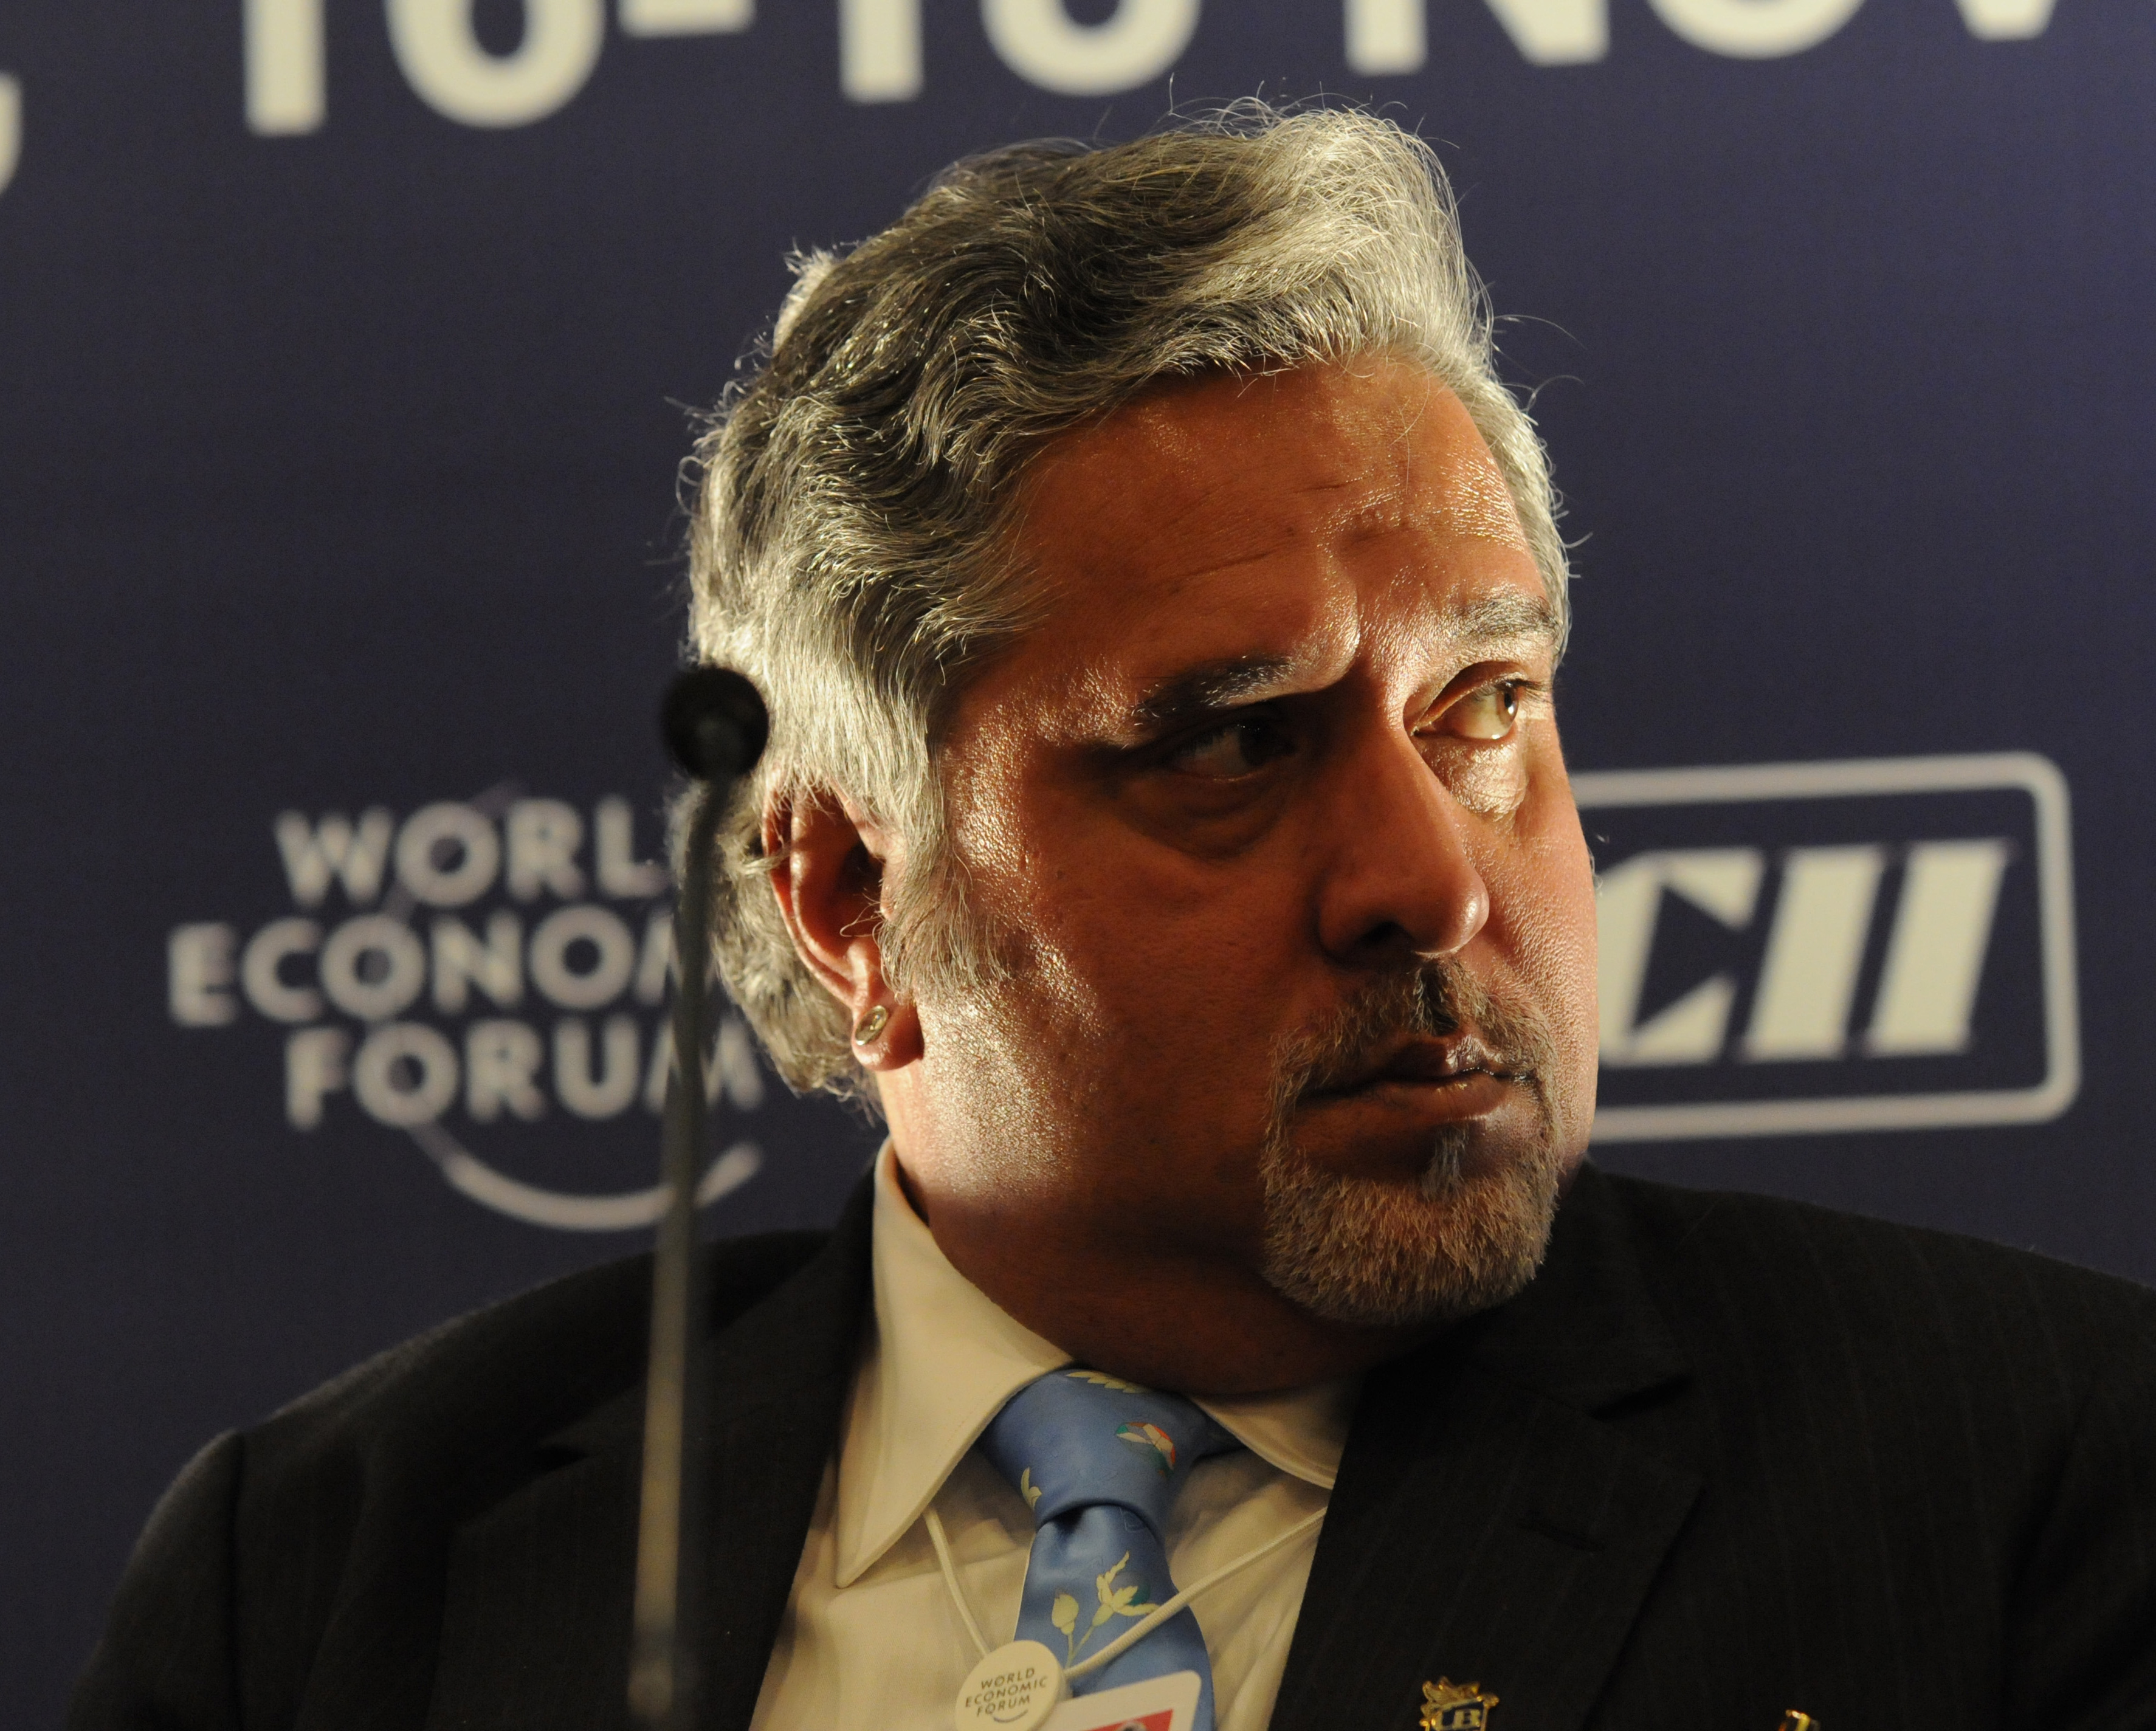 Diageo has chosen the opening of the annual Indian Premier League cricket tournament to further distance itself from Vijay Mallya, the flamboyant ... - Vijaymallya